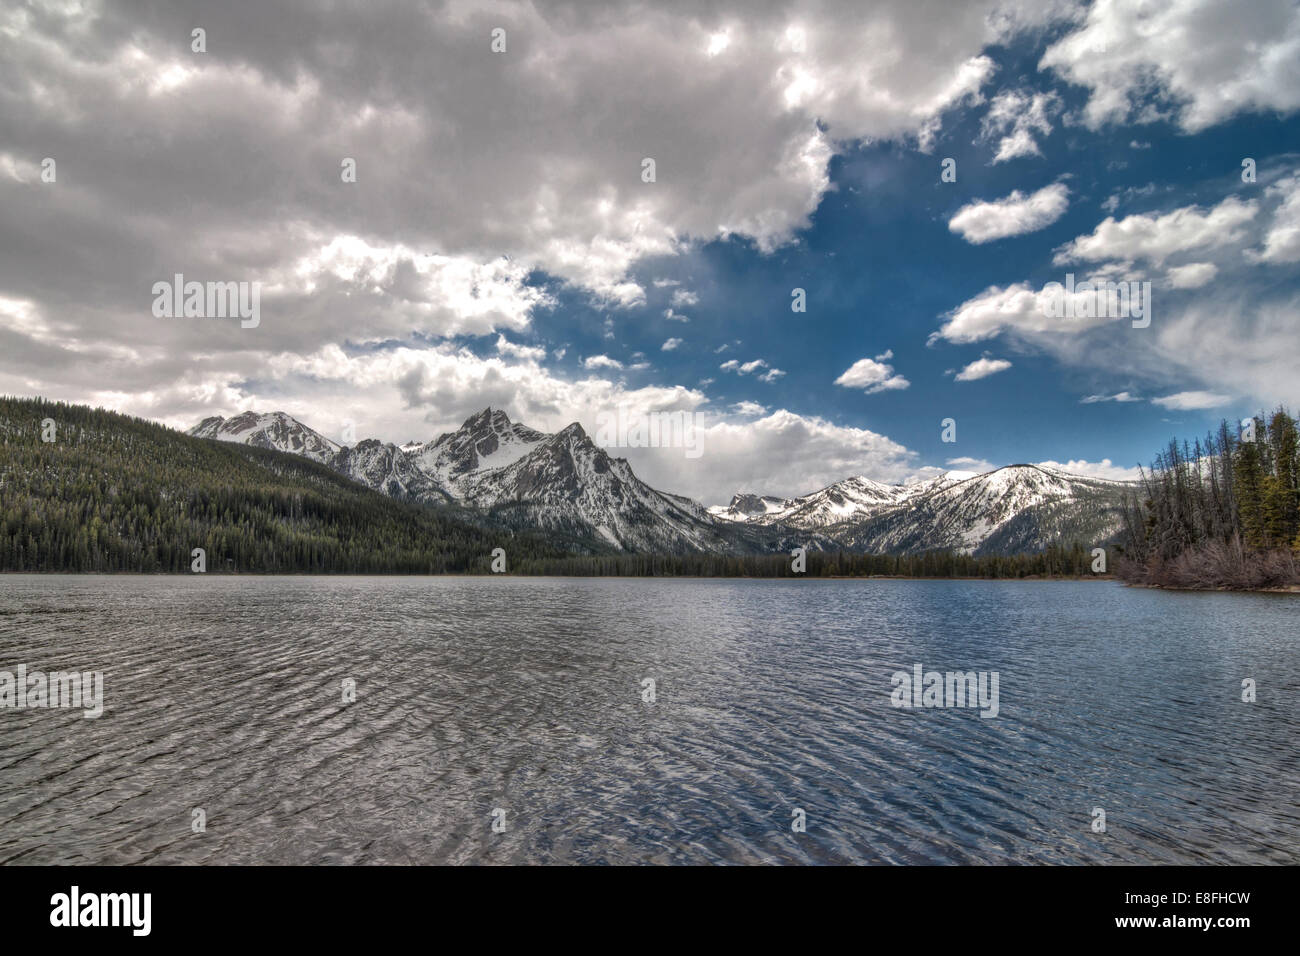 USA, Idaho, Custer County, Custer, Stanley Lake, National Forest Development, Lakeside view of Mountains Stock Photo